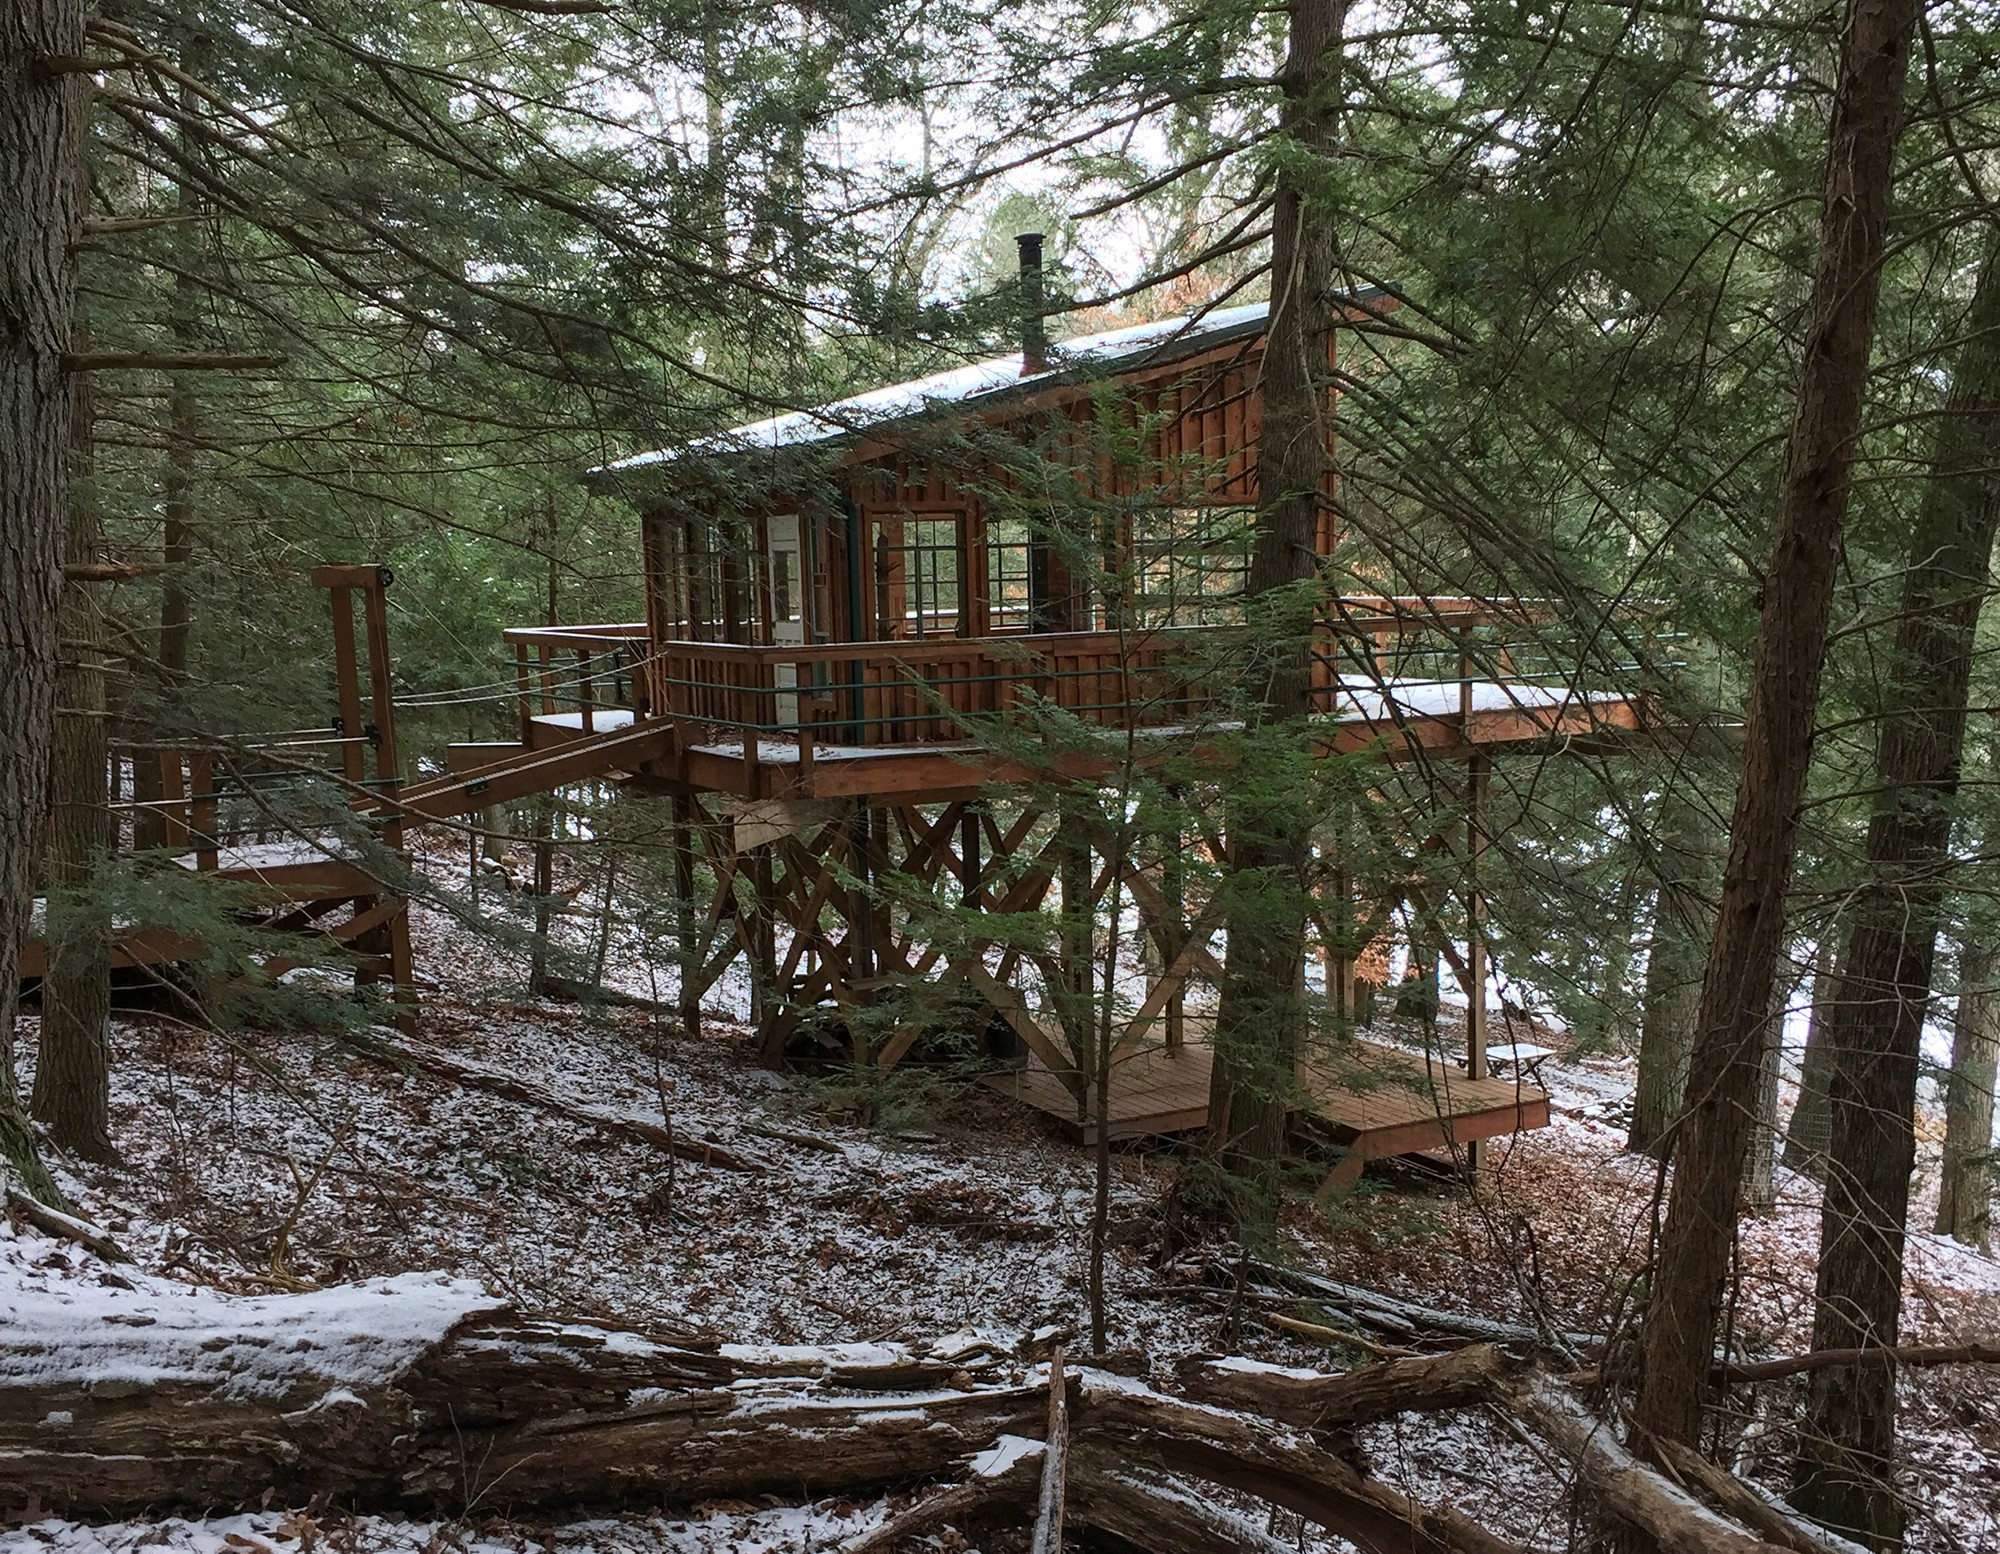 A small cabin built on a tower with a drawbridge in the woods.